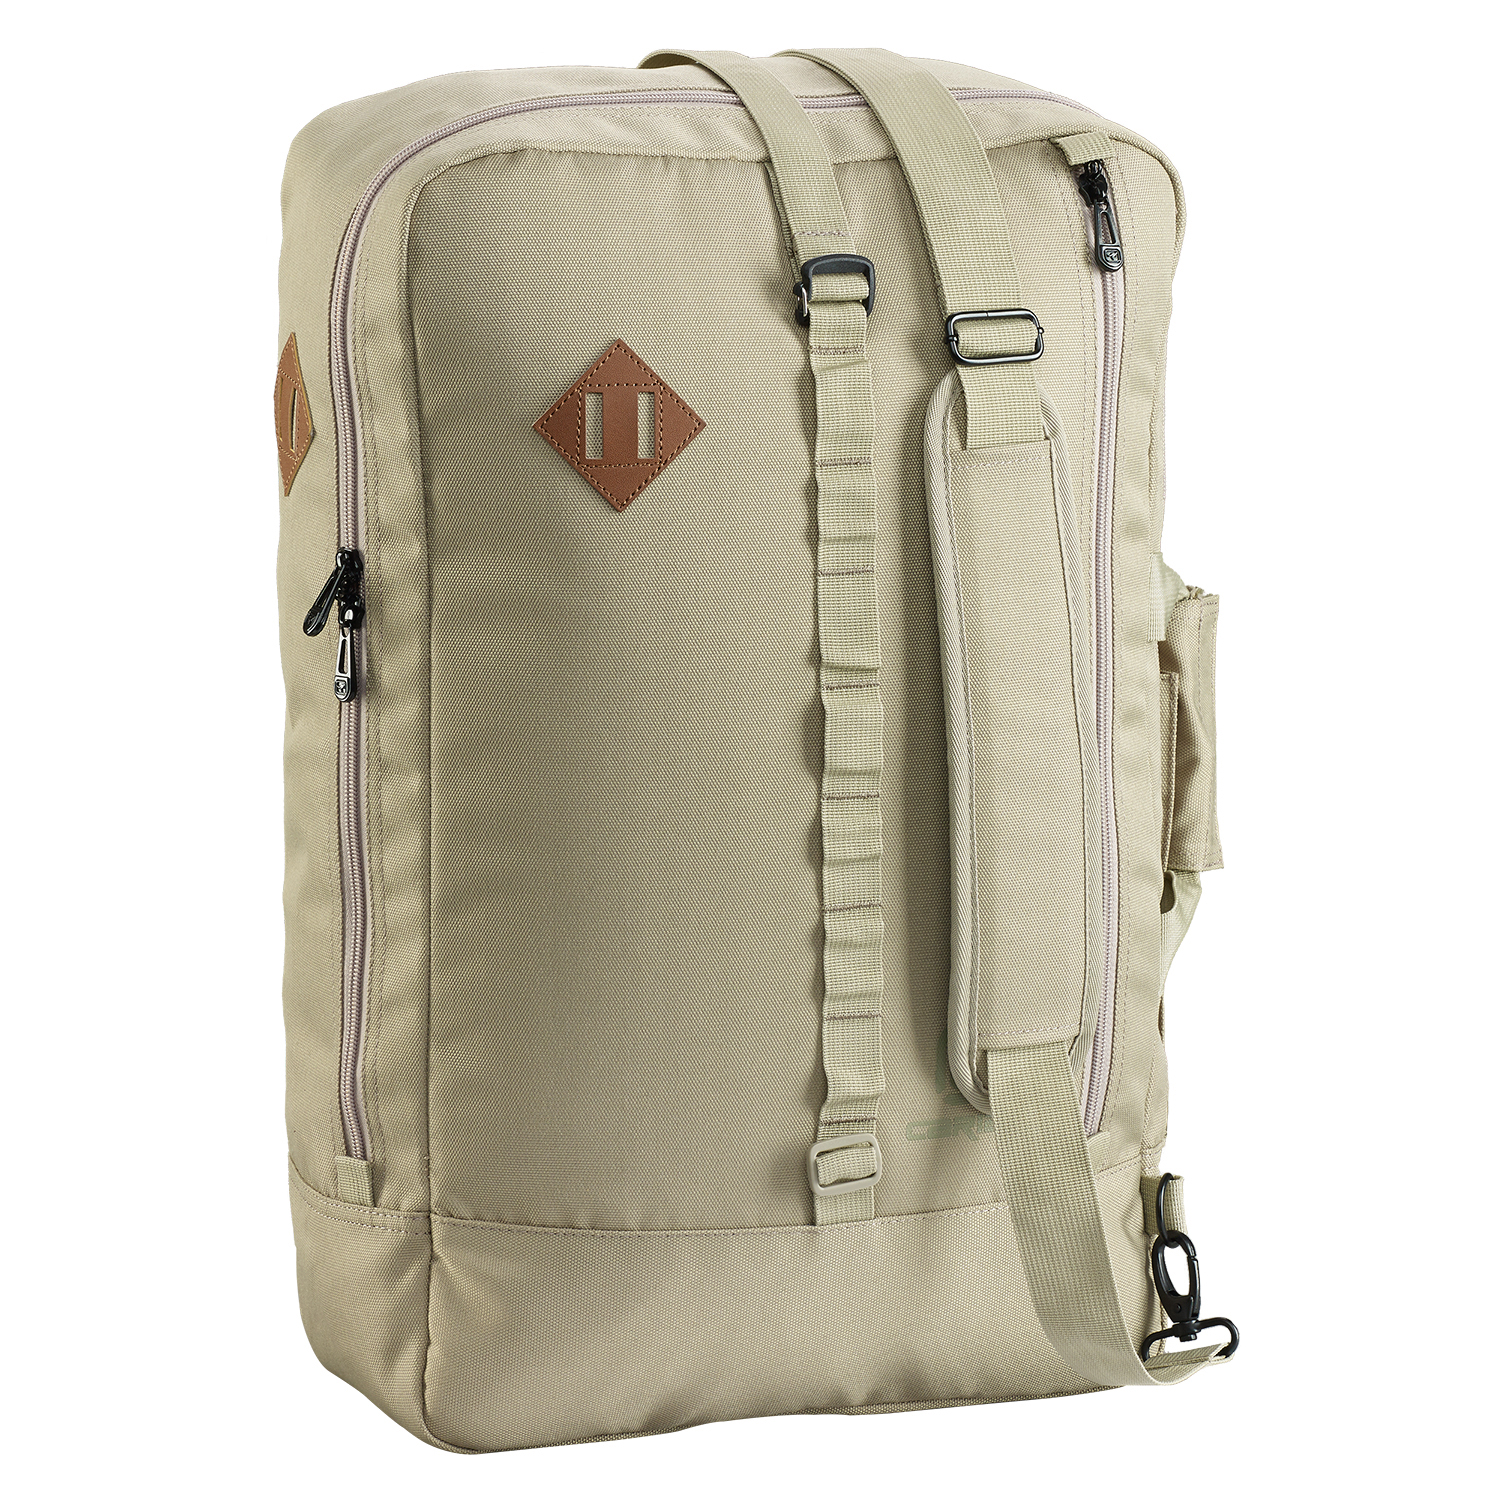 Overnight Carry On Luggage Cabin Caribee Red Wing